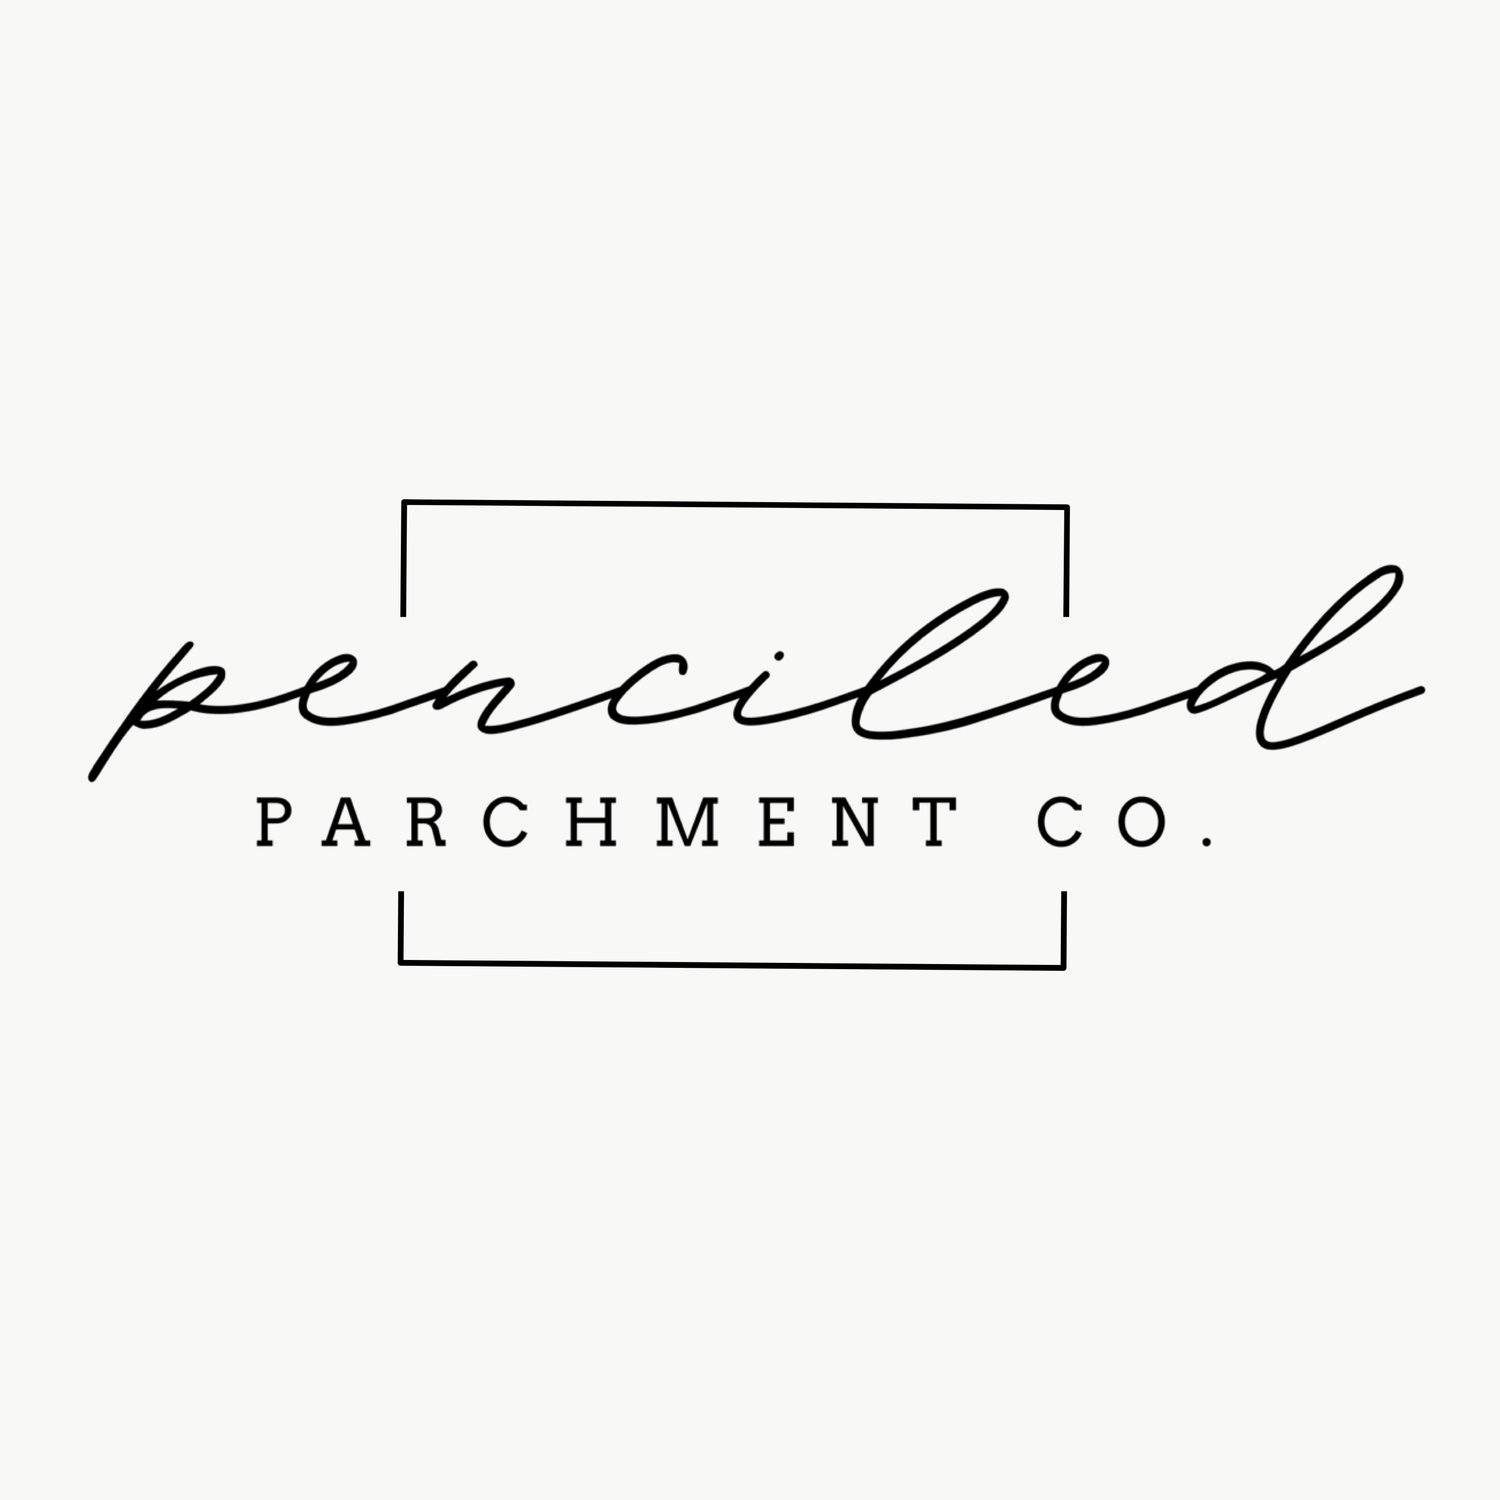 penciled parchment co